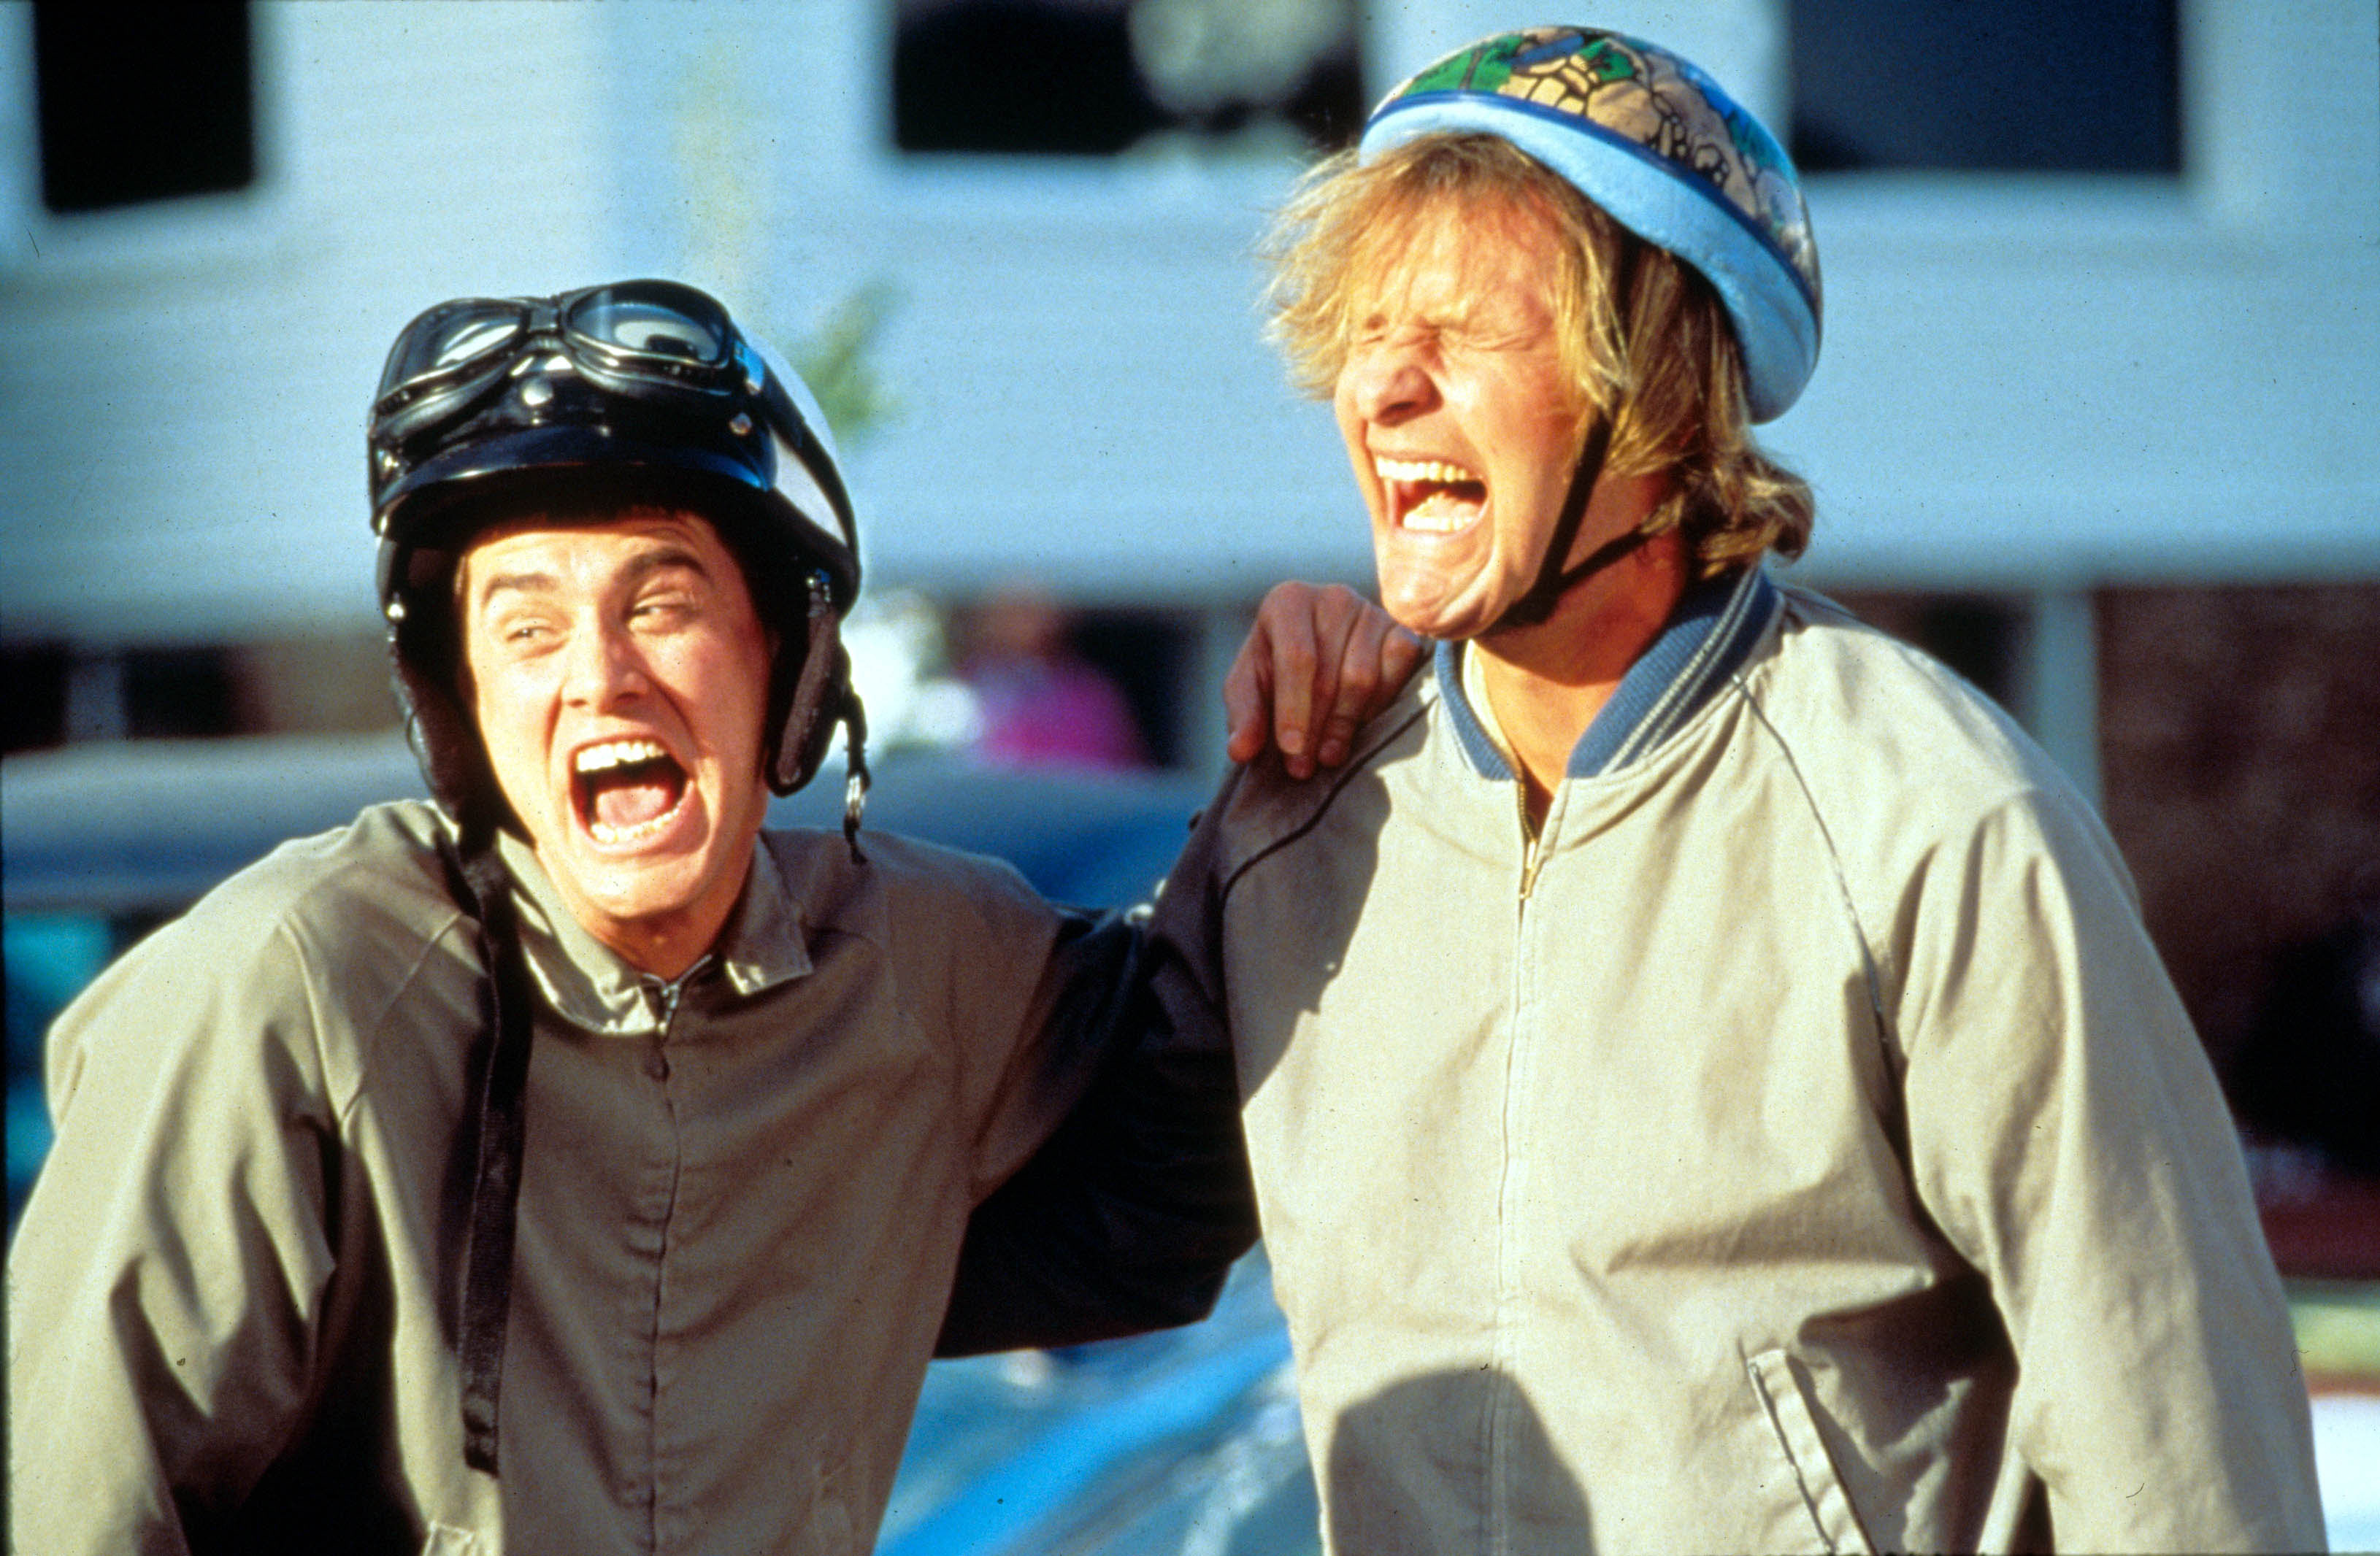 Dumb and Dumber To starts shooting in September, out in 2014, confirms Jeff Daniels